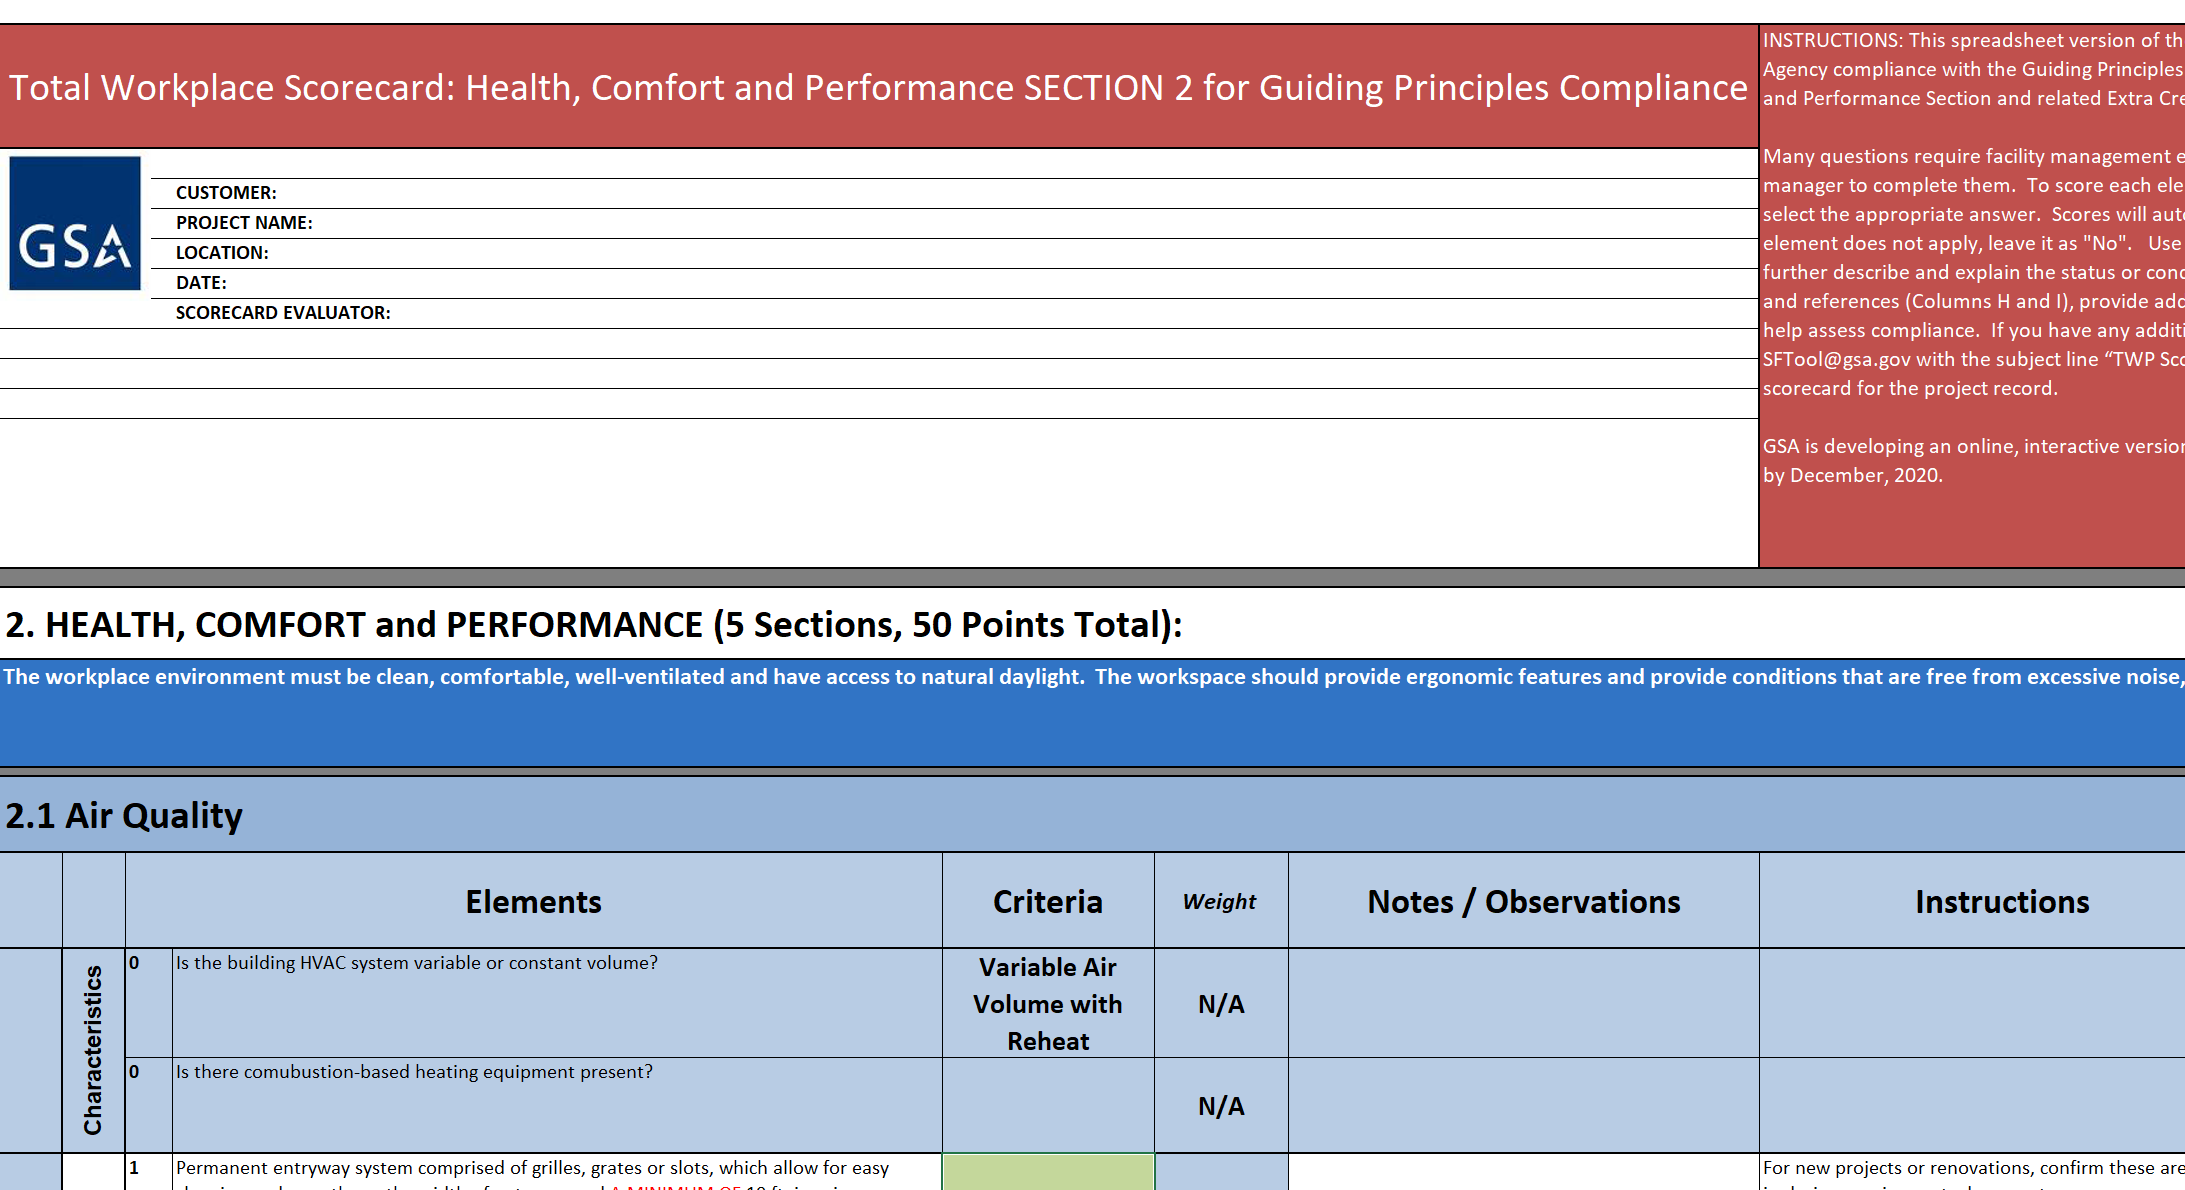 Screenshot of the Total Workplace Scorecard Section 2